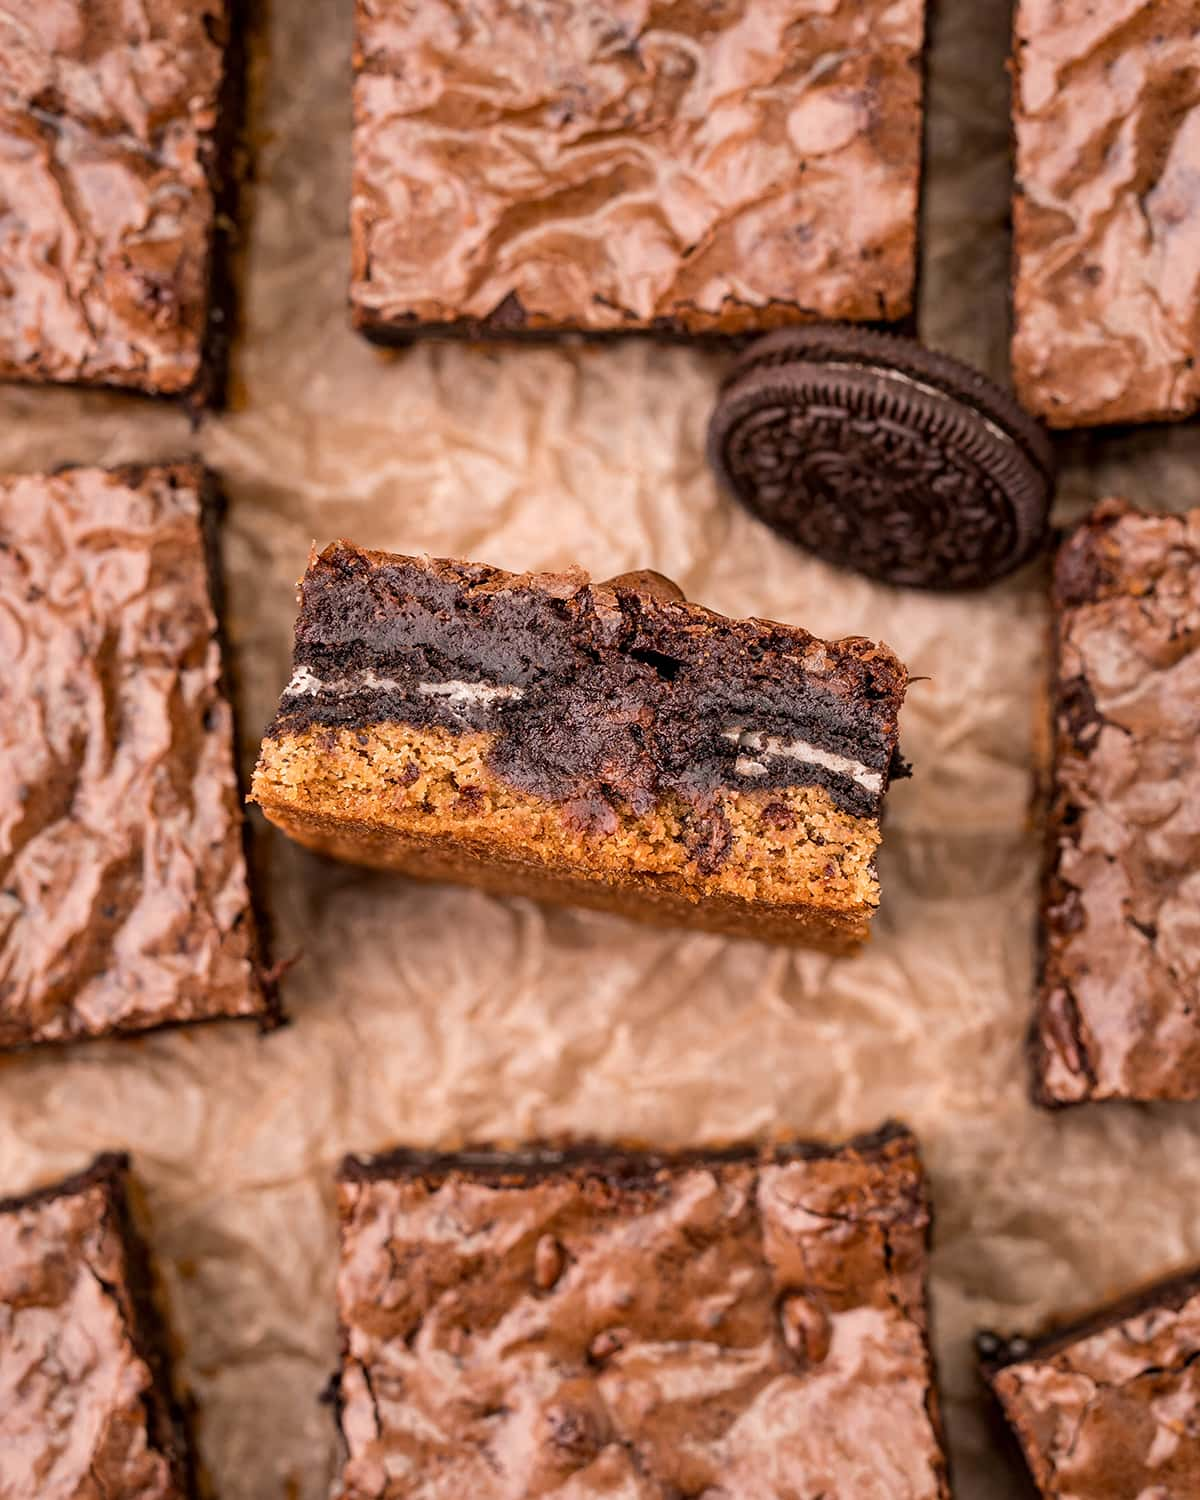 A slutty brownie brookie on its side, with a layer of chocolate chip cookie, Oreos, and brownie.